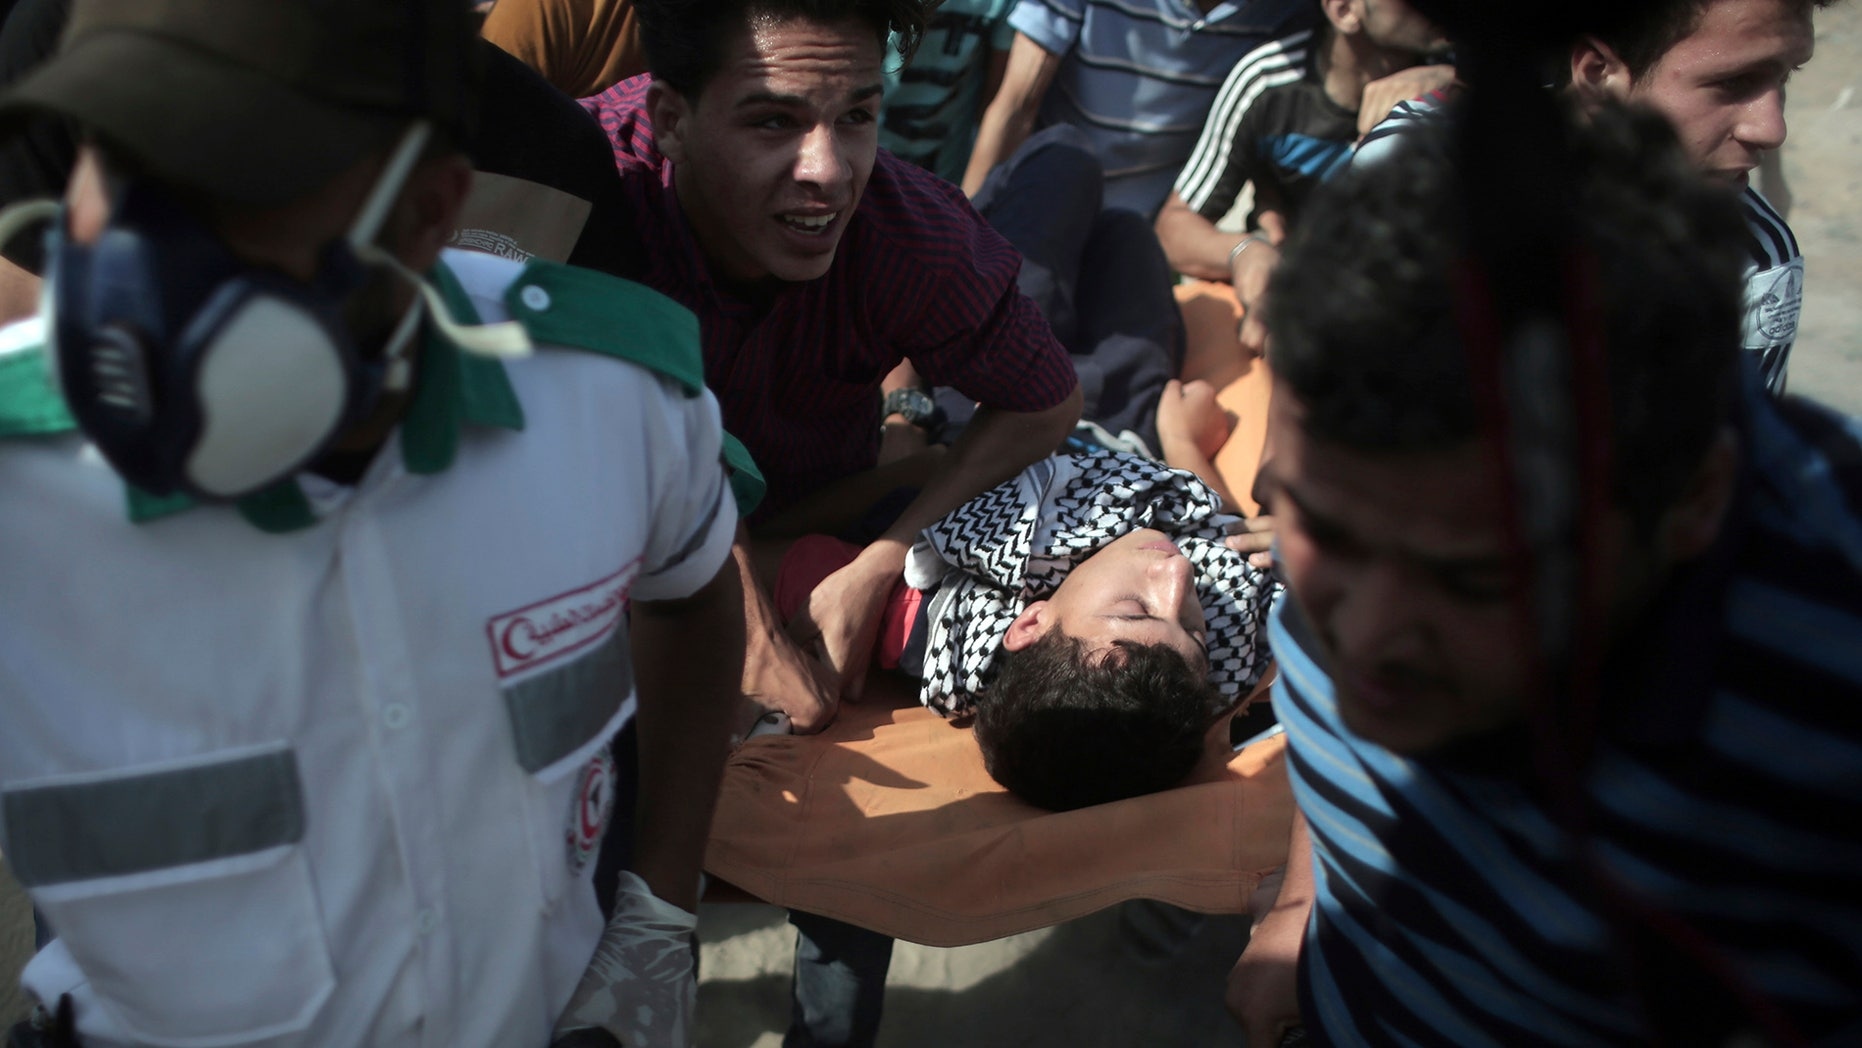 Palestinian medics and protesters evacuate an injured man during clashes with Israeli soldiers on the Israeli border with Gaza, Friday